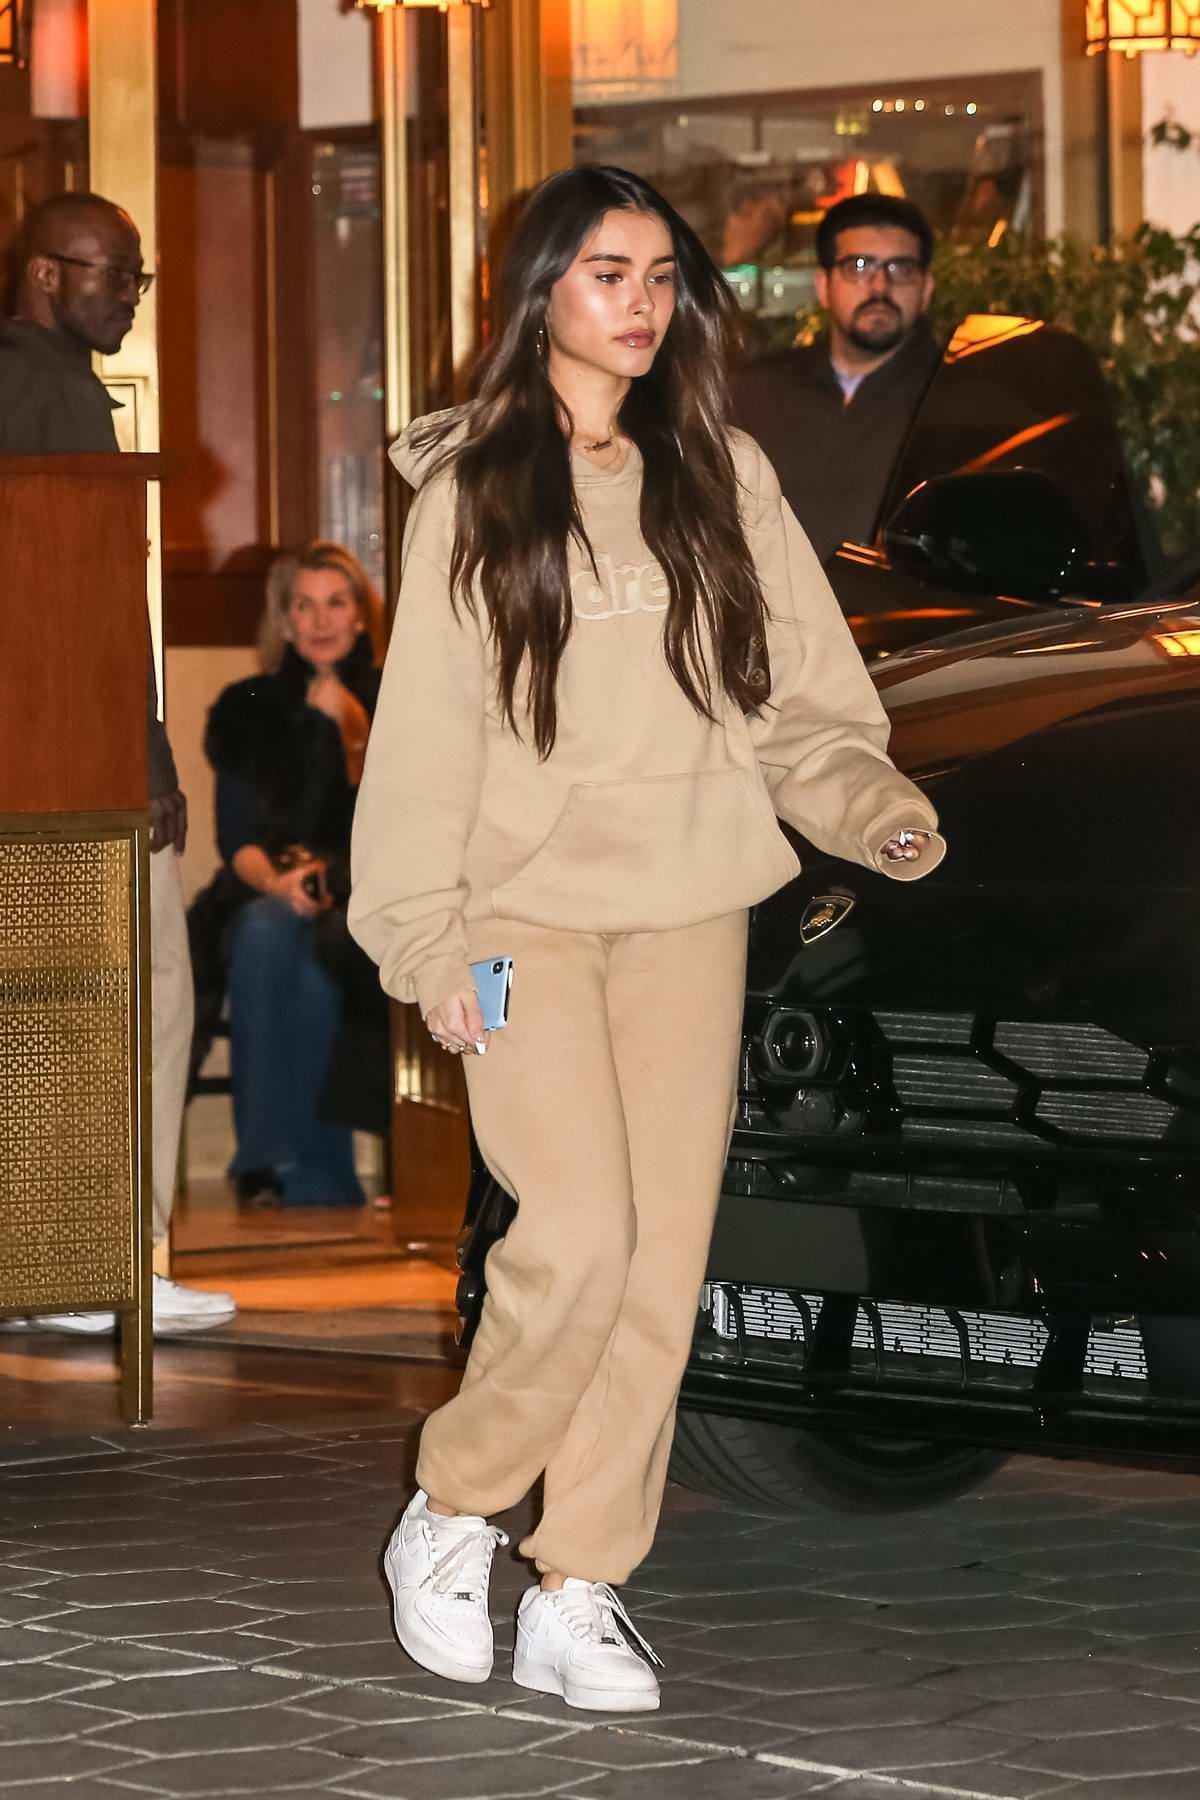 Madison Beer grabs dinner with friends at the Sunset Tower Hotel in West Hollywood, California